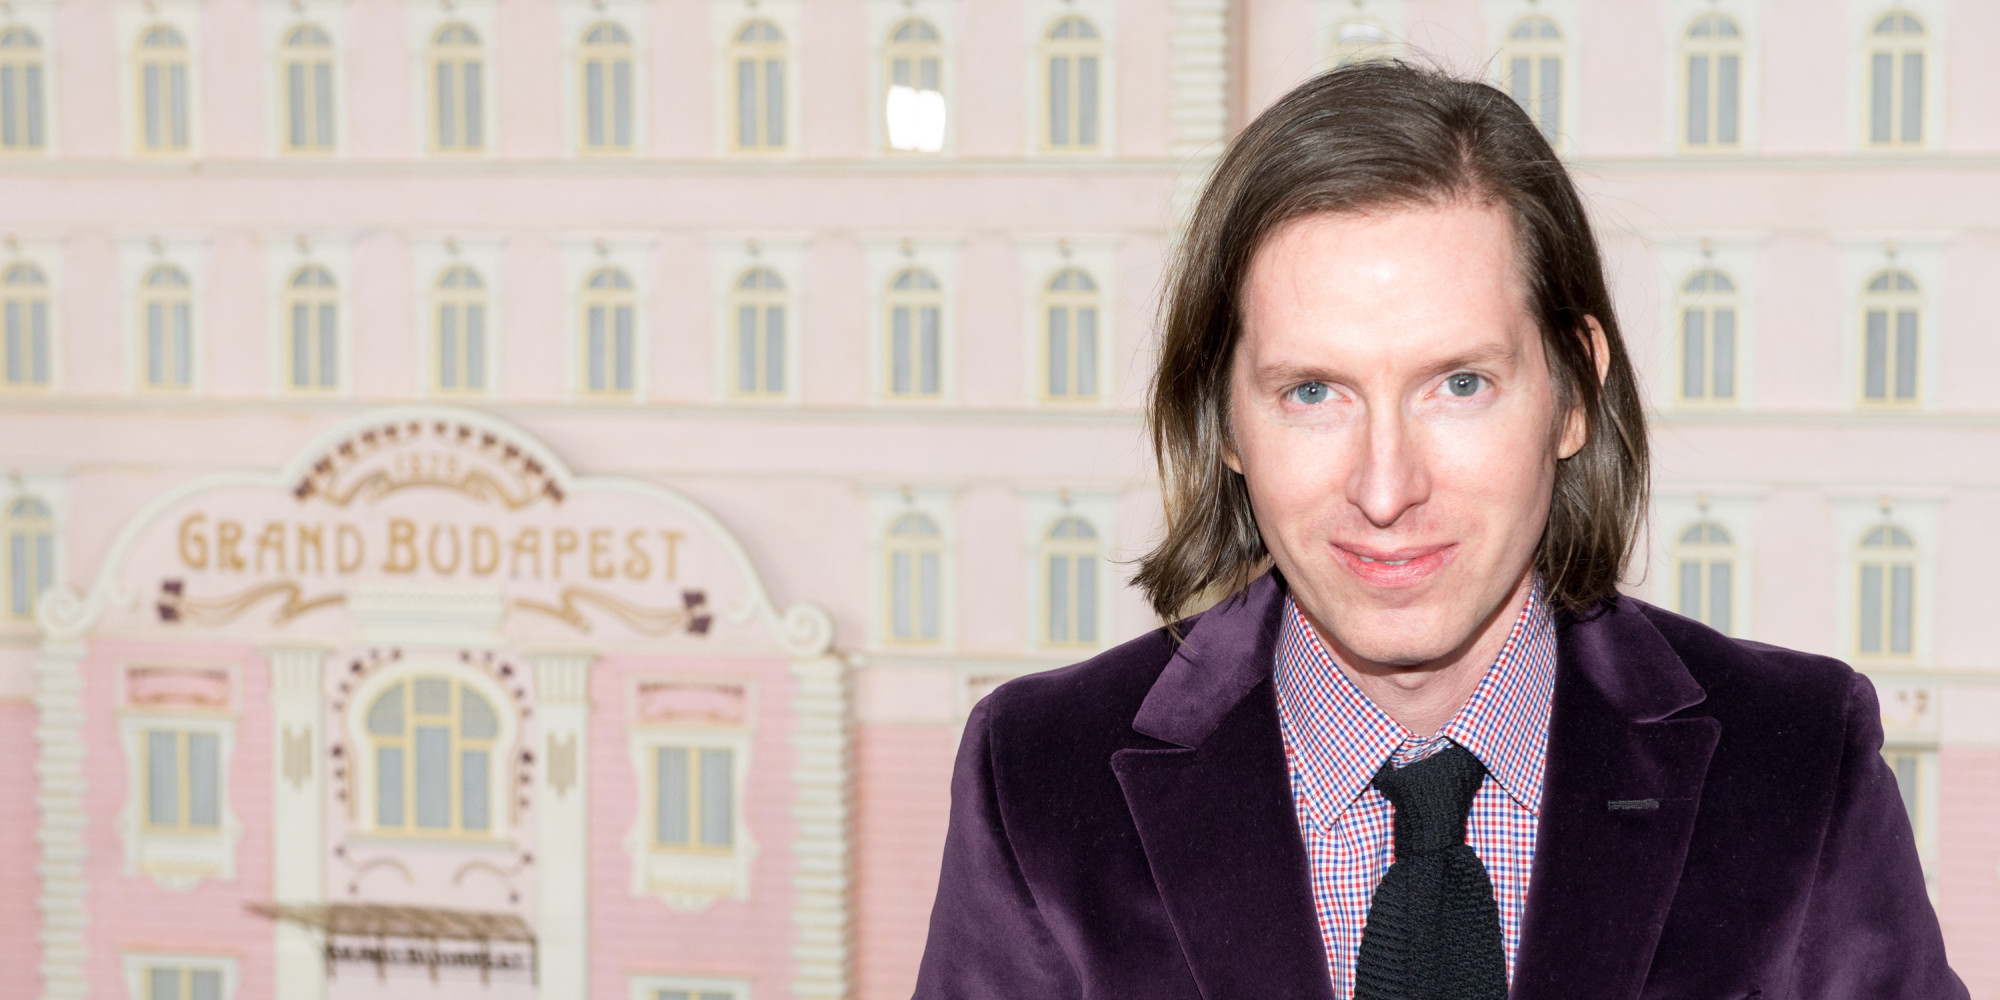 Wes Anderson and the Grand Budapest Hotel